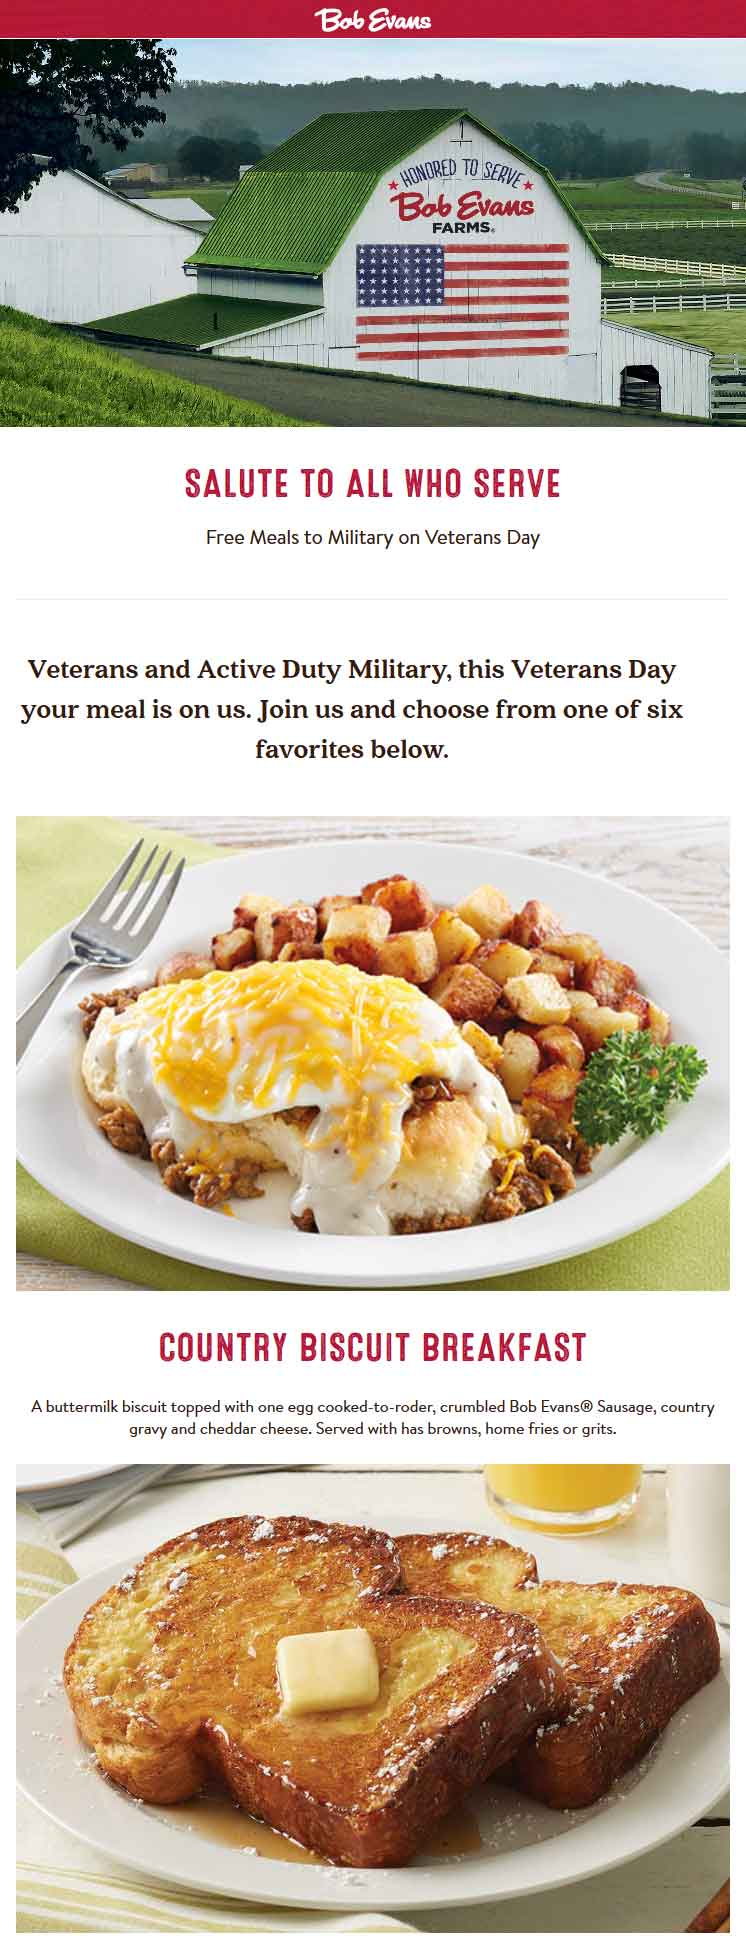 BobEvans.com Promo Coupon Free meals for military Saturday at Bob Evans restaurants